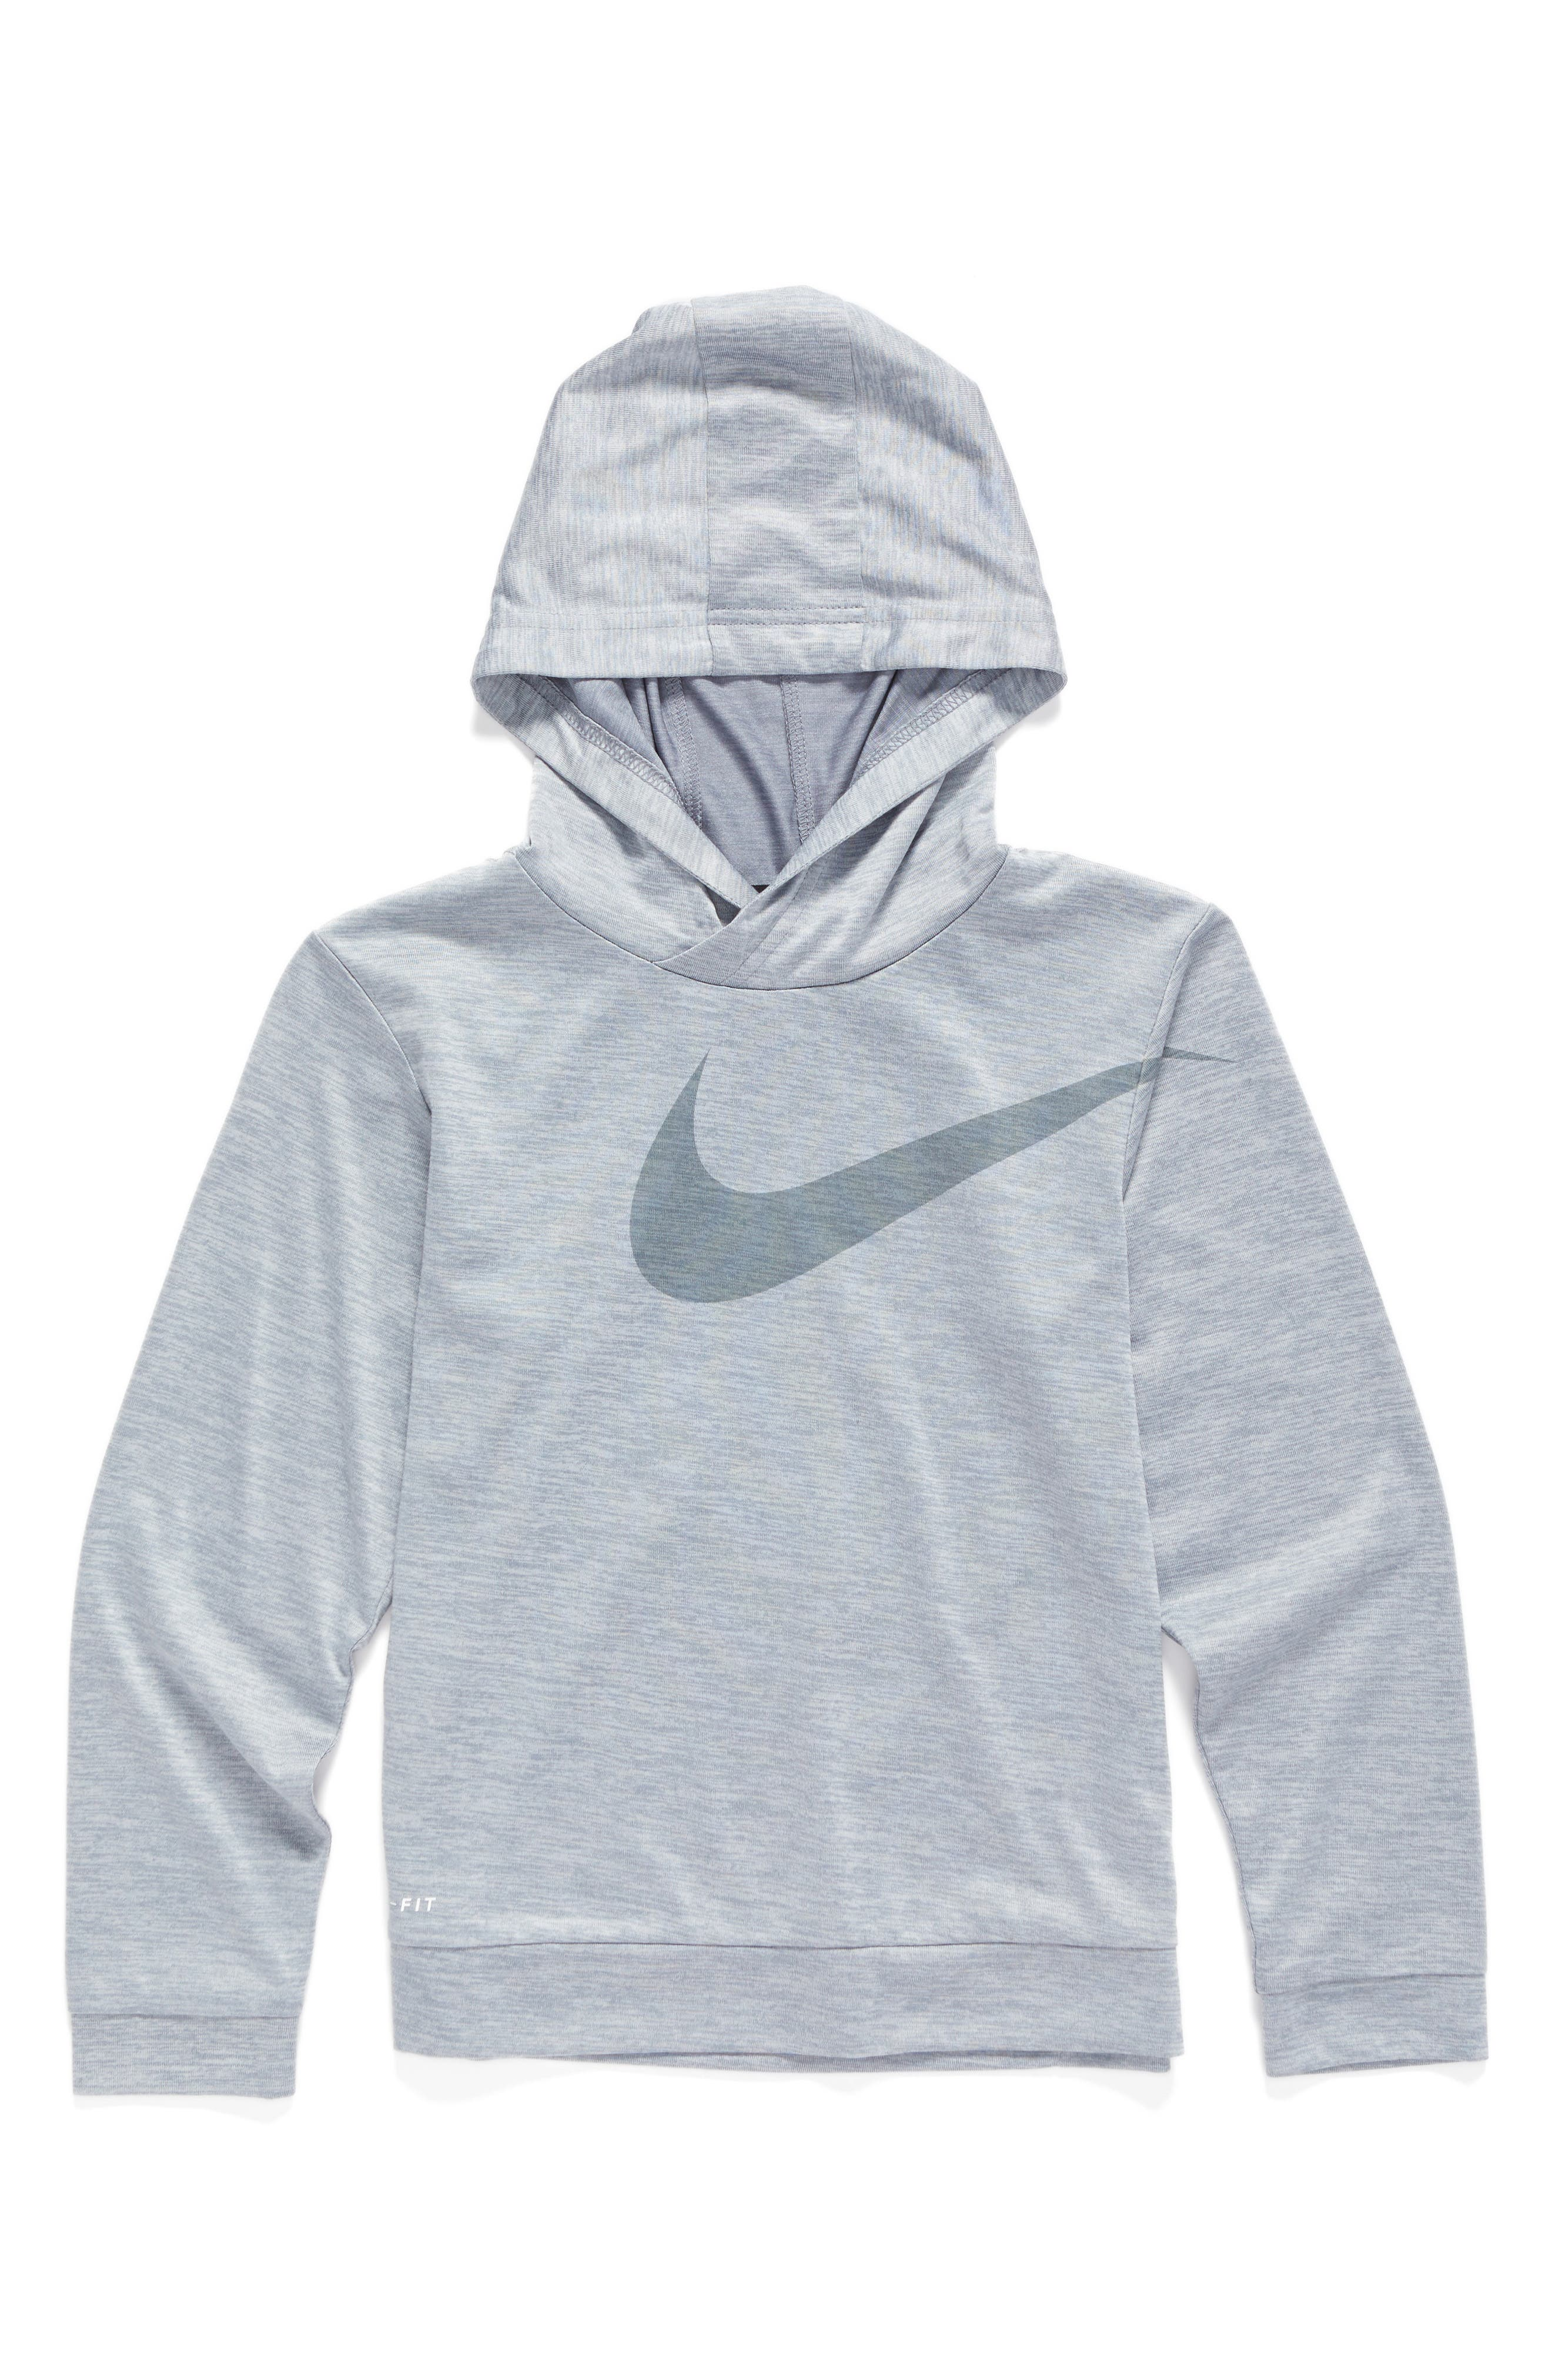 Alternate Image 1 Selected - Nike Swoosh Dri-FIT Hoodie (Toddler Boys & Little Boys)